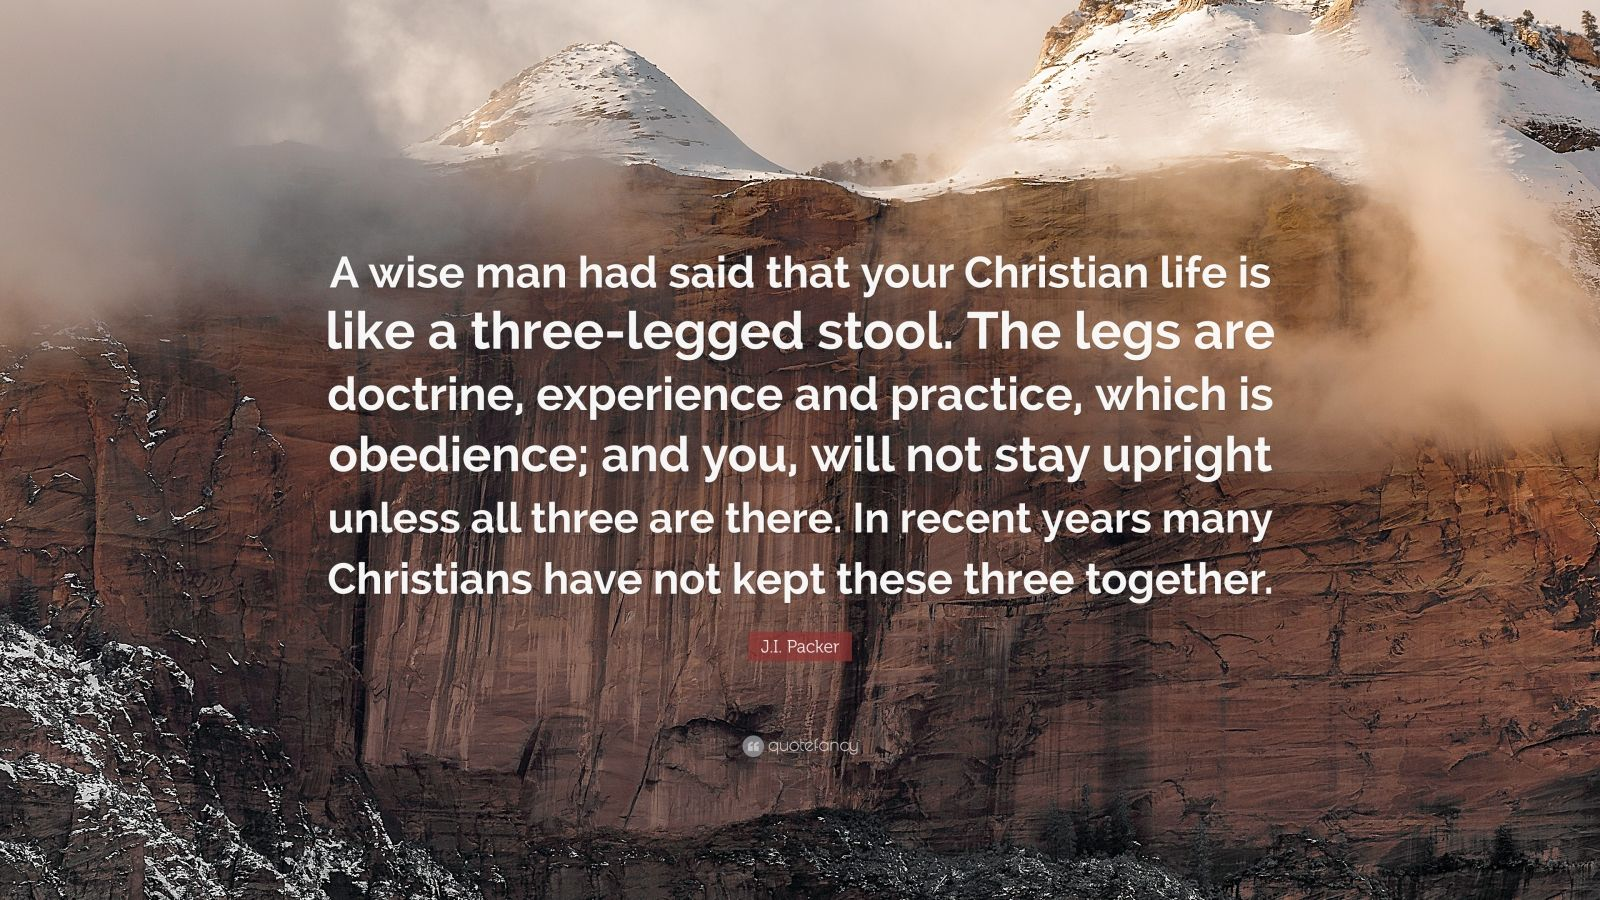 """J.I. Packer Quote: """"A wise man had said that your Christian life is like a three-legged stool. The legs are doctrine, experience and practice, which is obedience; and you, will not stay upright unless all three are there. In recent years many Christians have not kept these three together."""""""